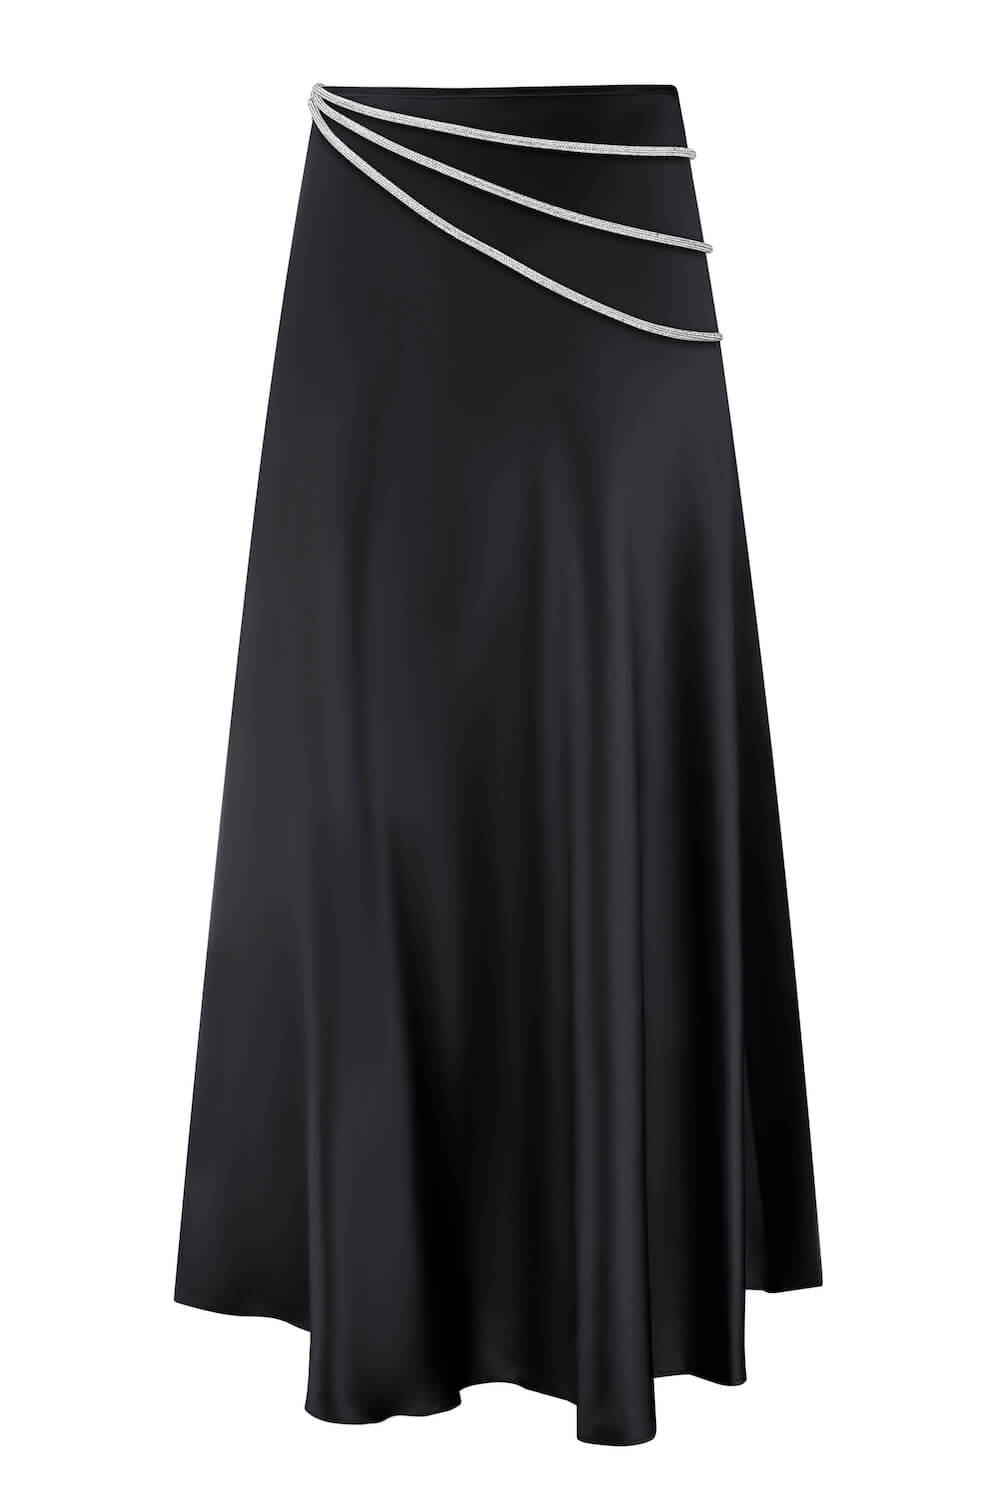 LAETITIA SLIT-HEM SILK MIDI SKIRT